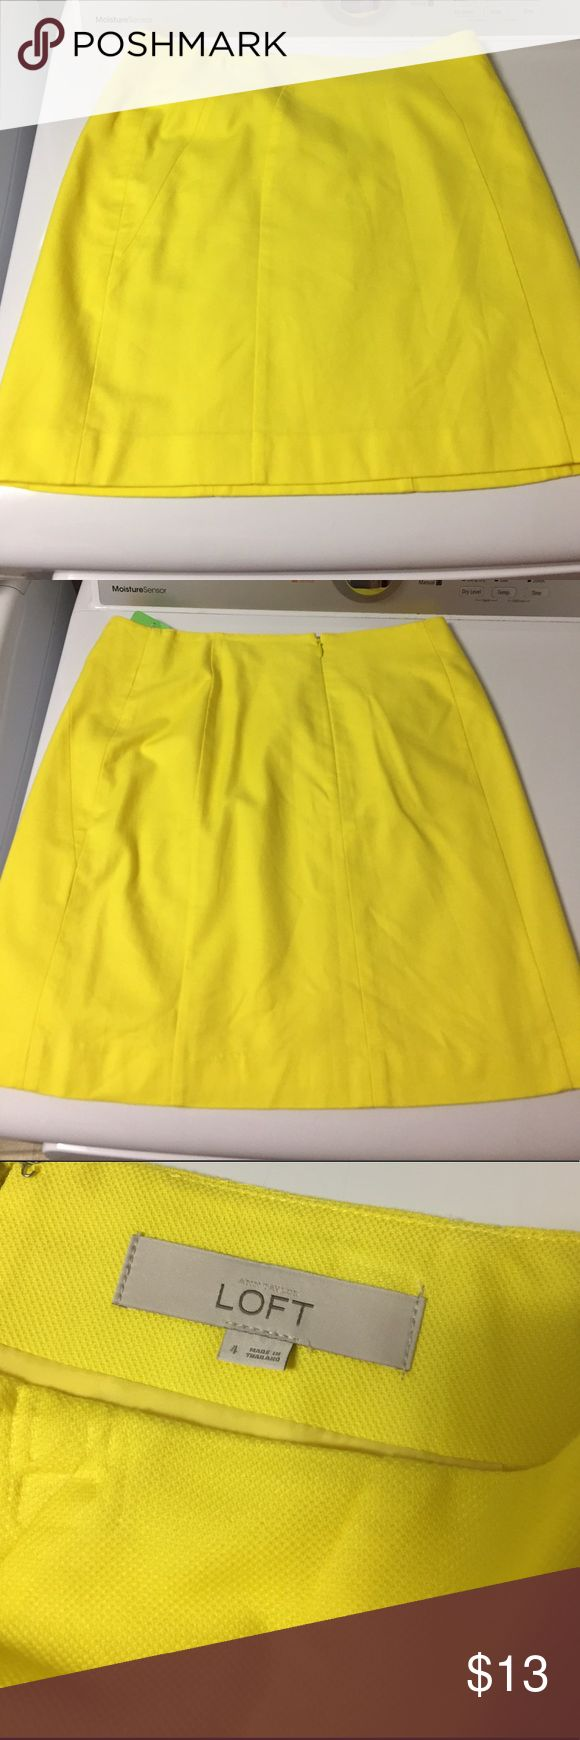 Bright yellow lined mini skirt Bright yellow lined mini skirt. Size 4. Ann Taylor. EUC. Cotton/rayon/spandex. Made in Indonesia. Size zip with two hook/eye. Ann Taylor Skirts Mini